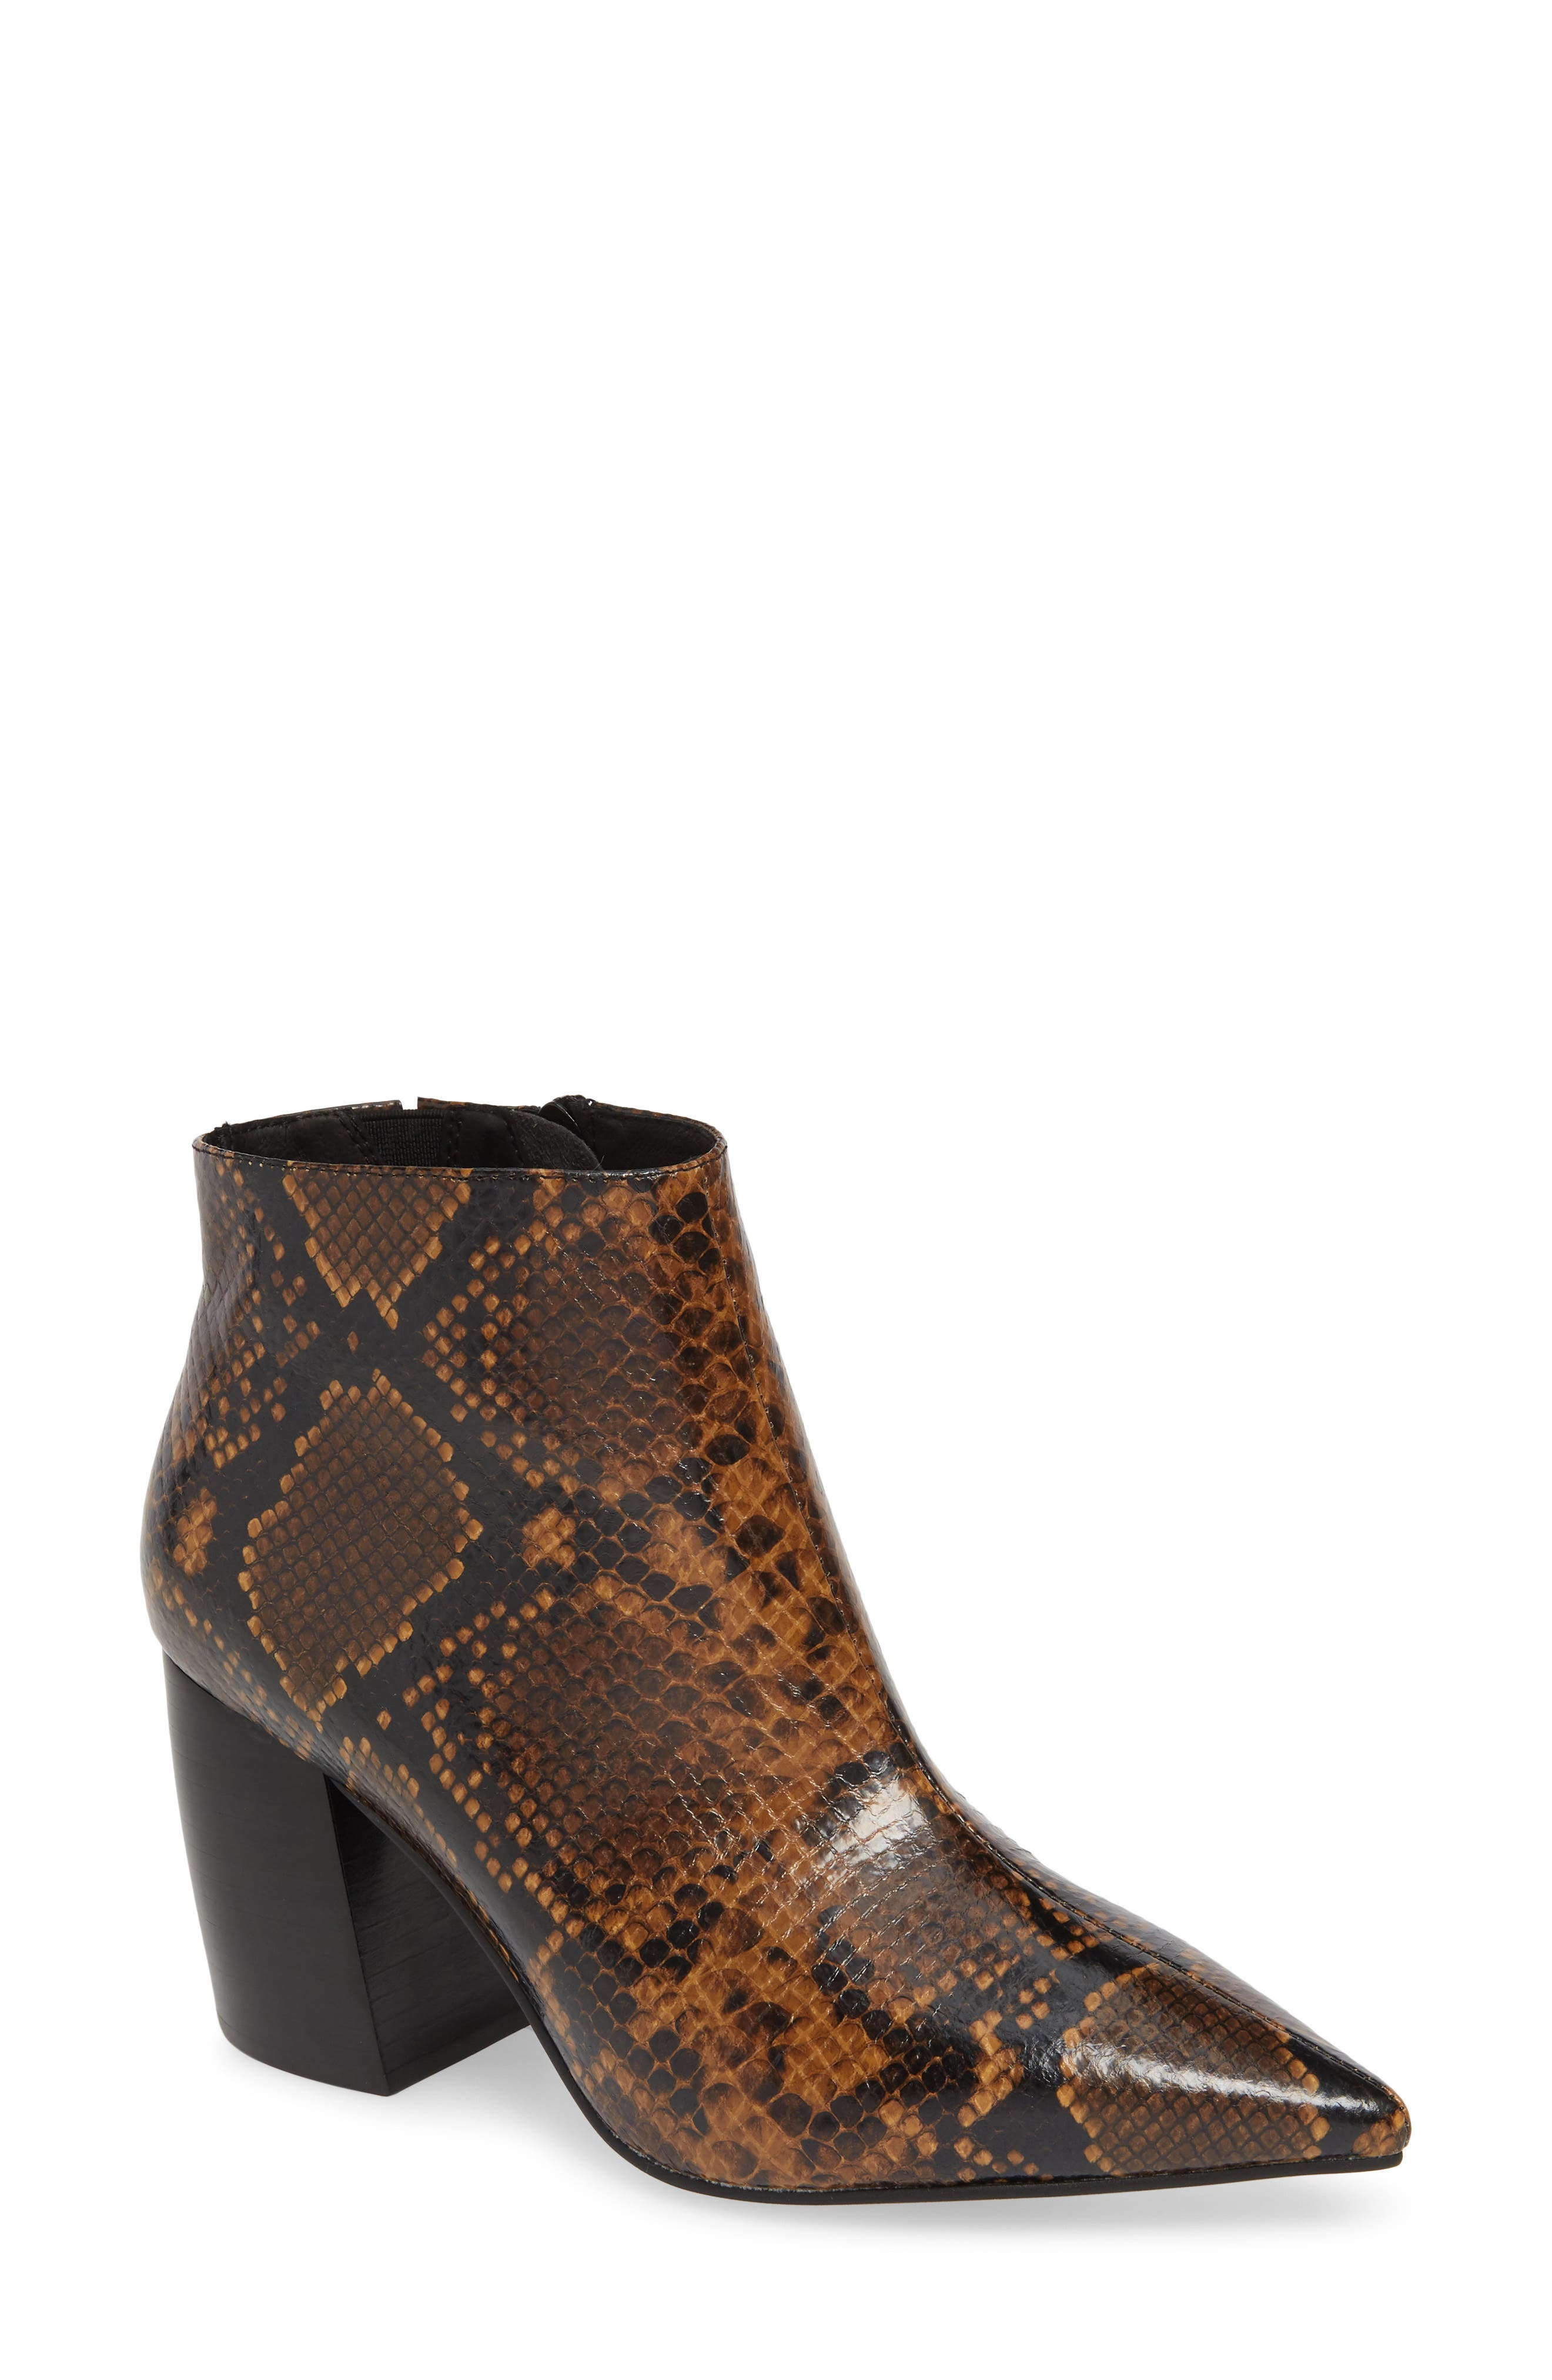 JEFFREY CAMPBELL Final Bootie, Main, color, NATURAL/ BLACK SNAKE PRINT